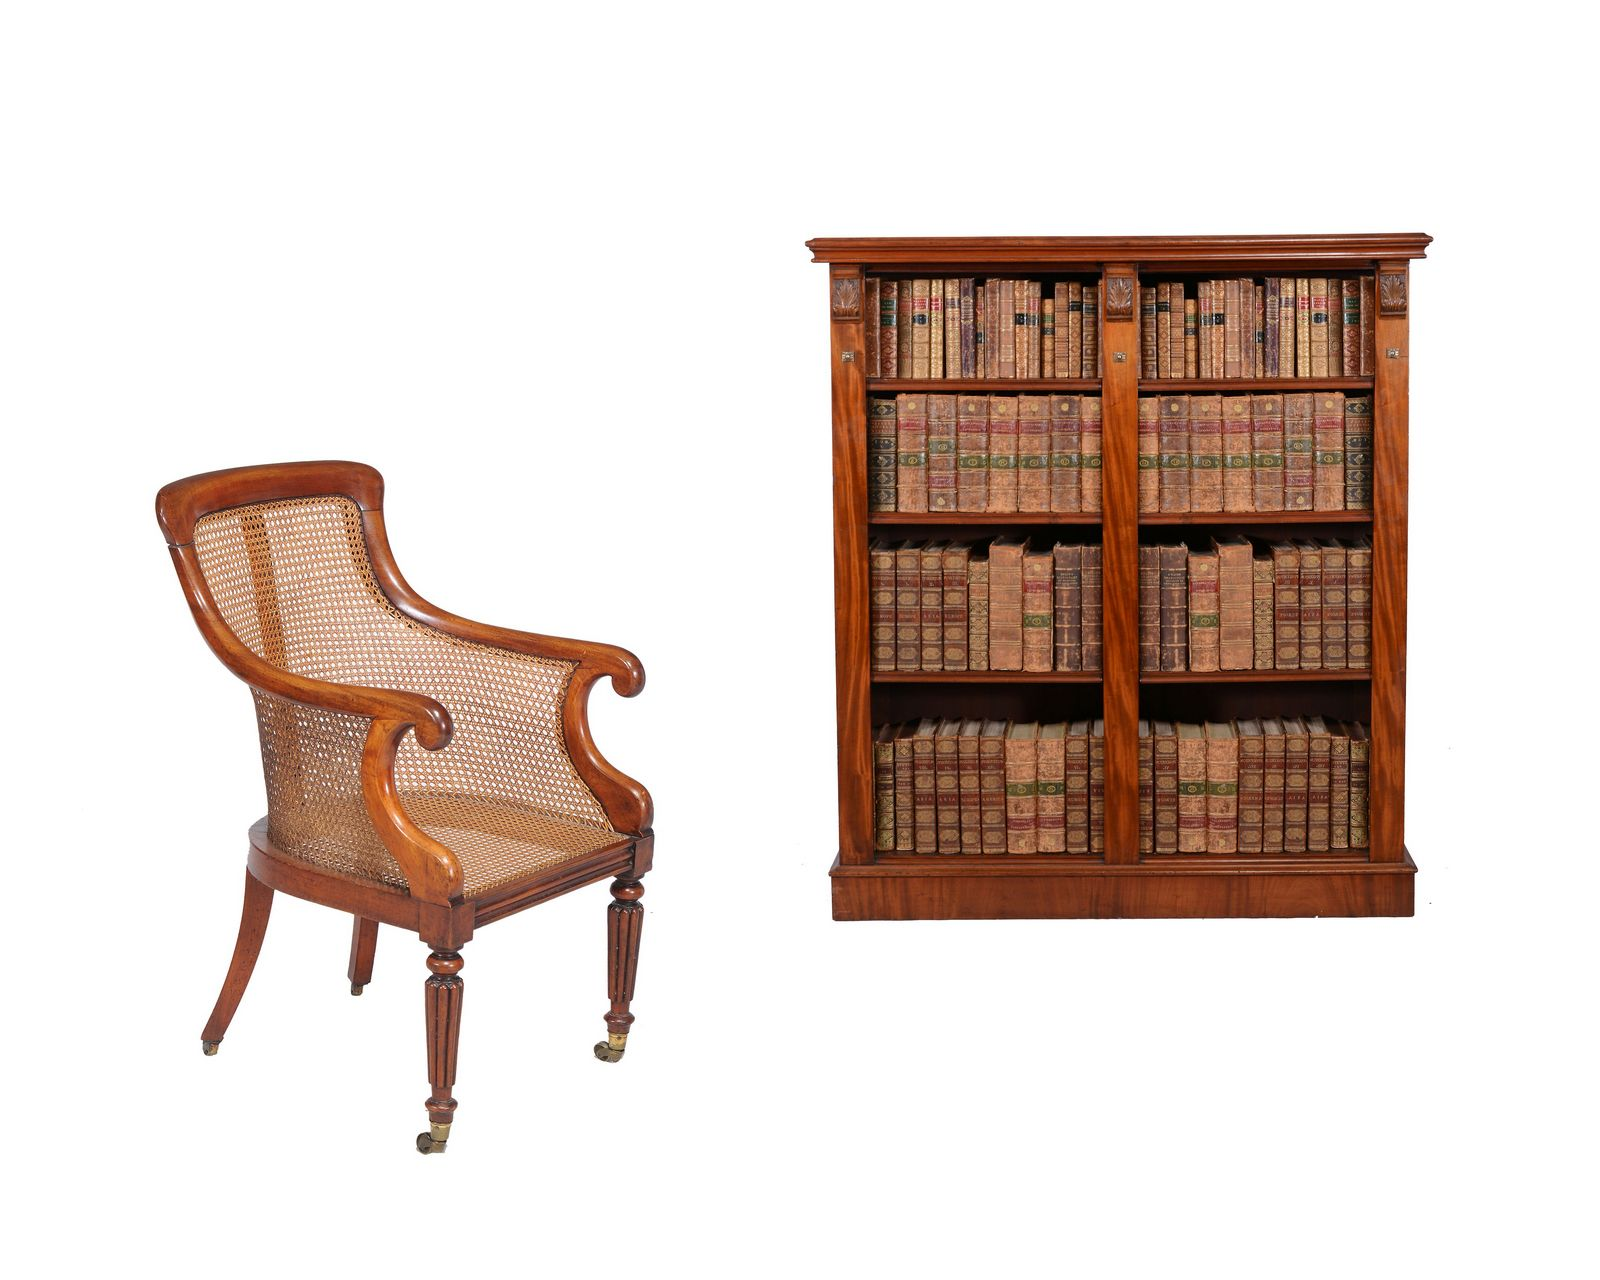 A Regency mahogany bergere armchair, circa 1815, in the manner of Gillows of Lancaster and a mahogany open bookcase, late 19th century, with two banks of adjustable shelves, with metal plaque to rear for MAPLE & CO - Dim: chair:  93cm high, 56cm wide, 57cm deep - bookcase: 154cm high, 136cm wide, 32cm deep.